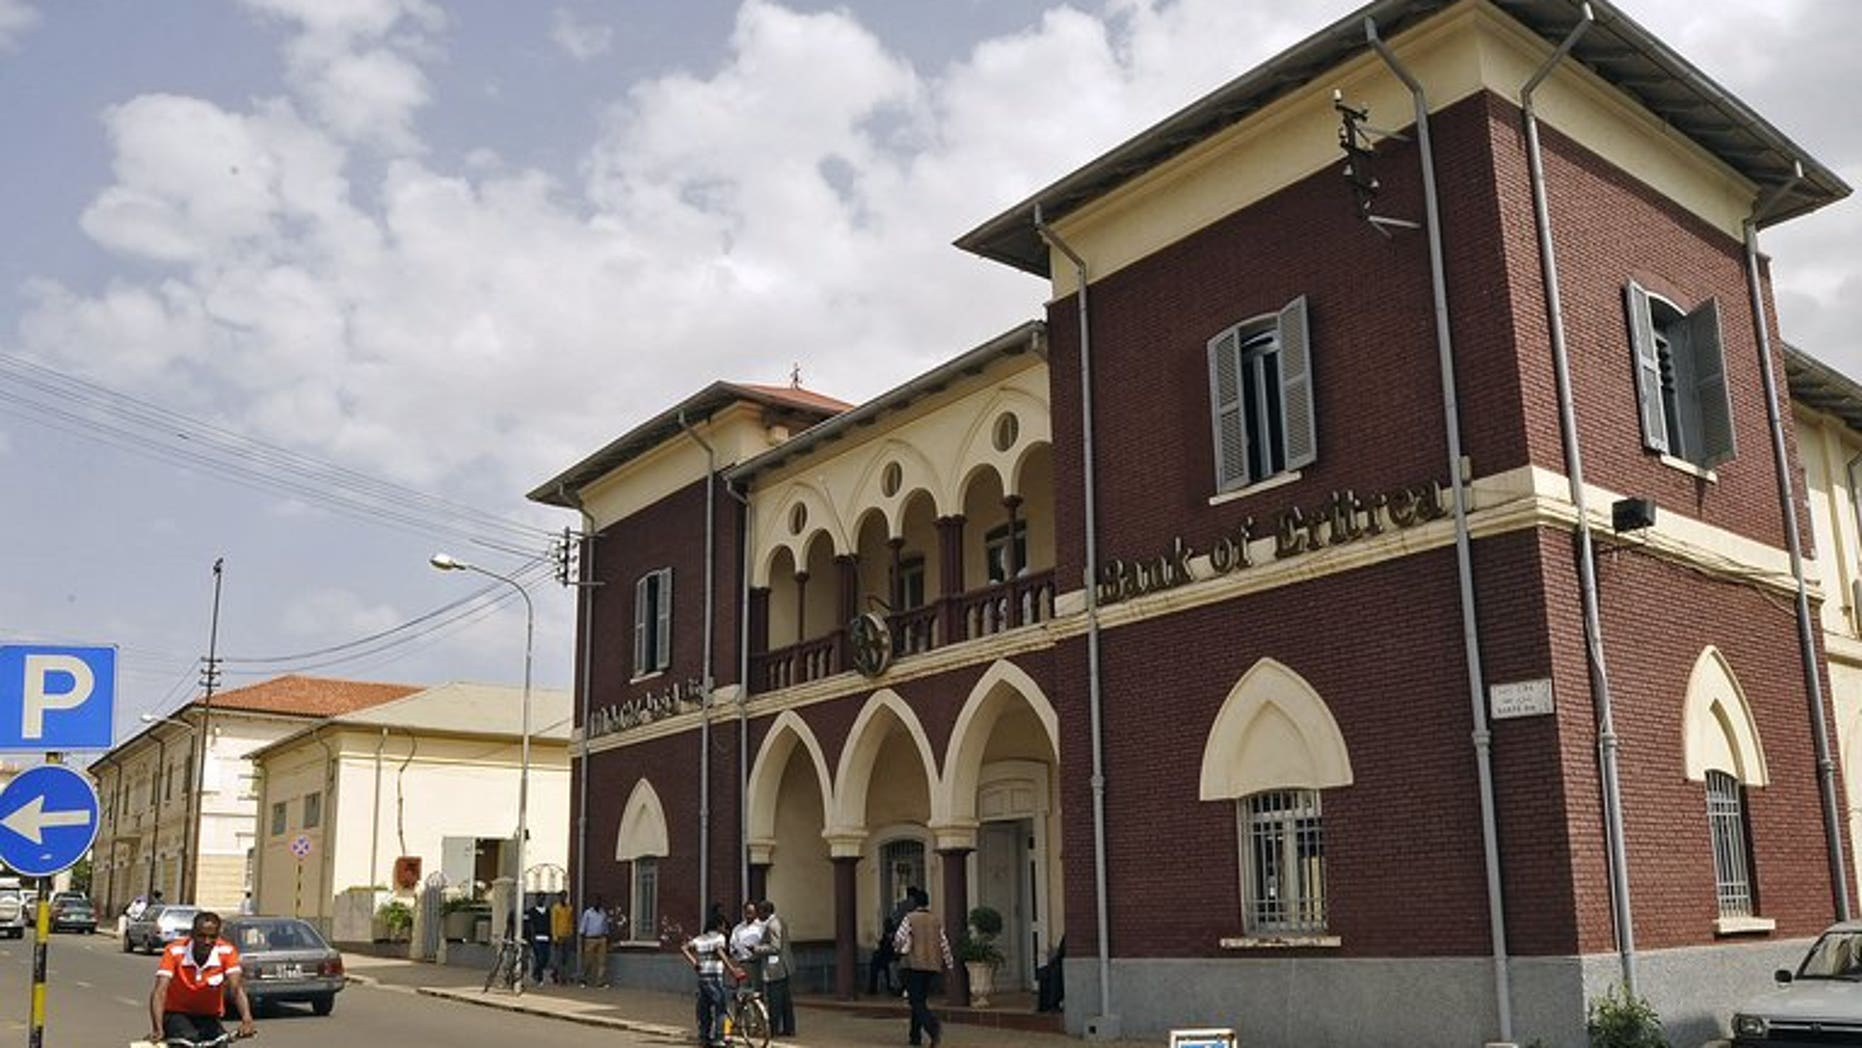 A photo taken on July 22, 2013 shows the Bank of Eritrea in Asmara. Long criticised for backing rebel groups across the Horn of Africa, Eritrea has said that ending its isolation is crucial for economic growth, blaming external threats for its slow development.